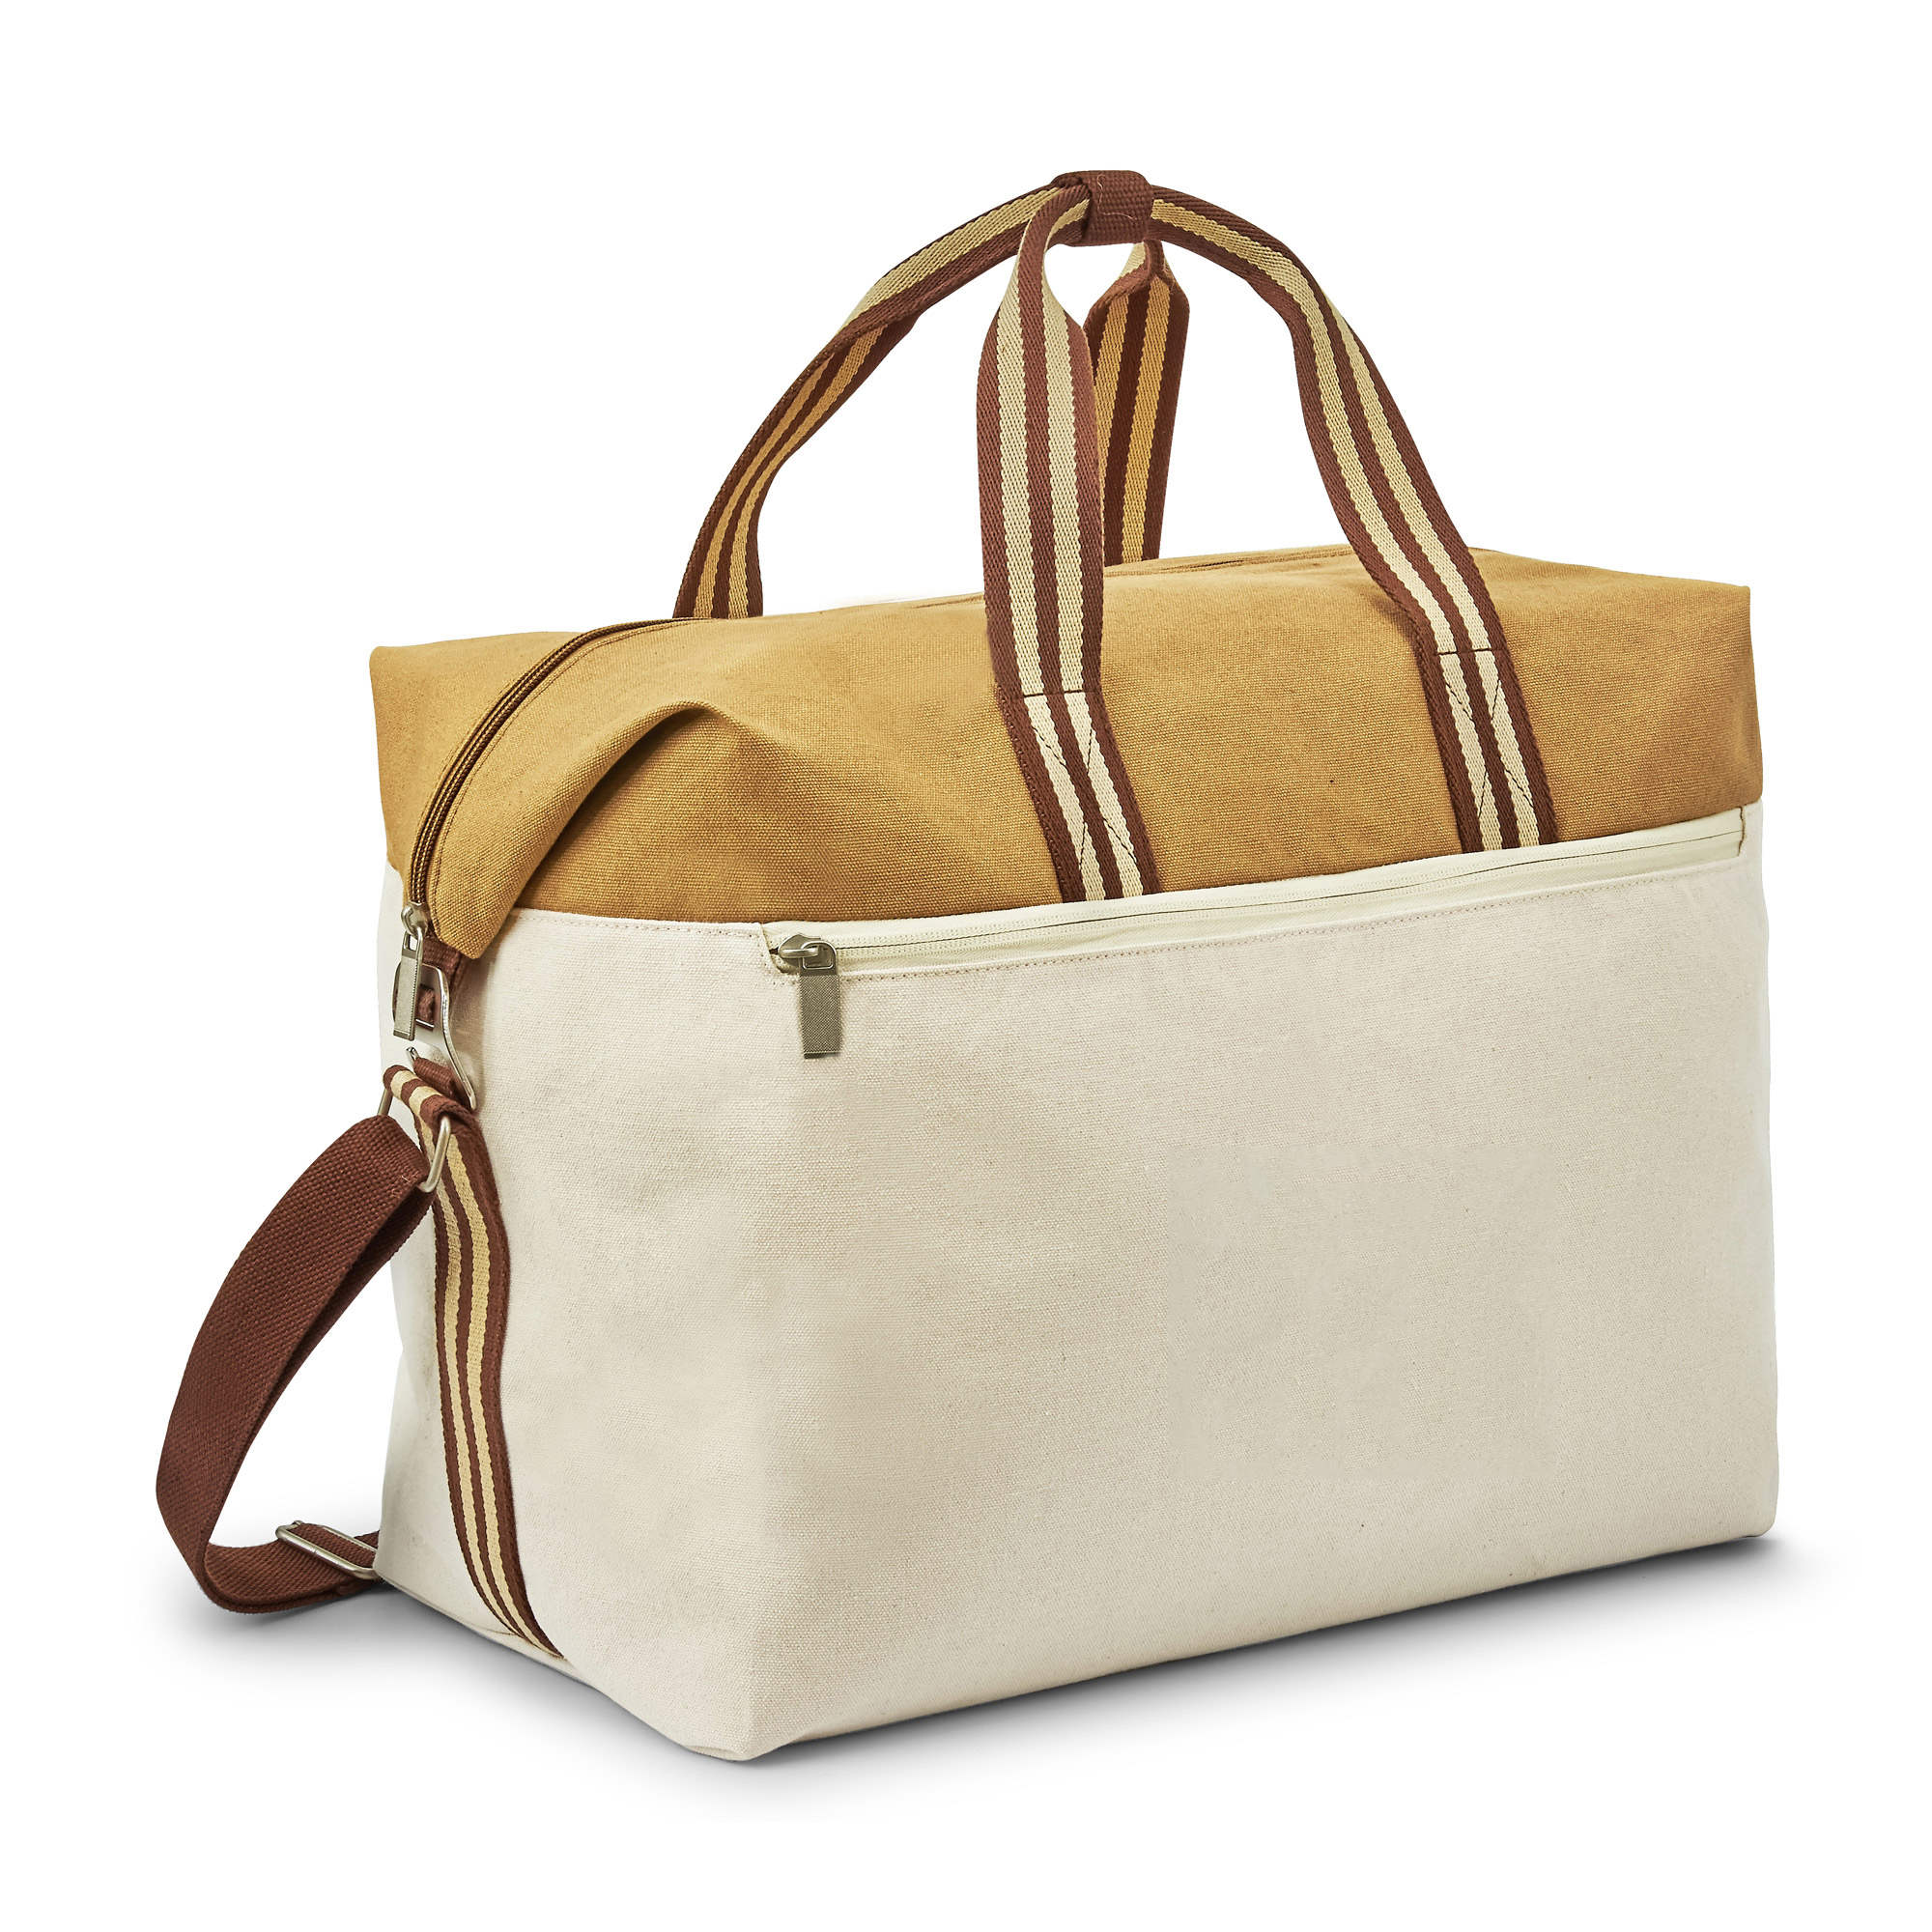 Duffel bag with coated cotton on top panel and 12oz cotton as main body fabric. (Natural and Khaki colorway)